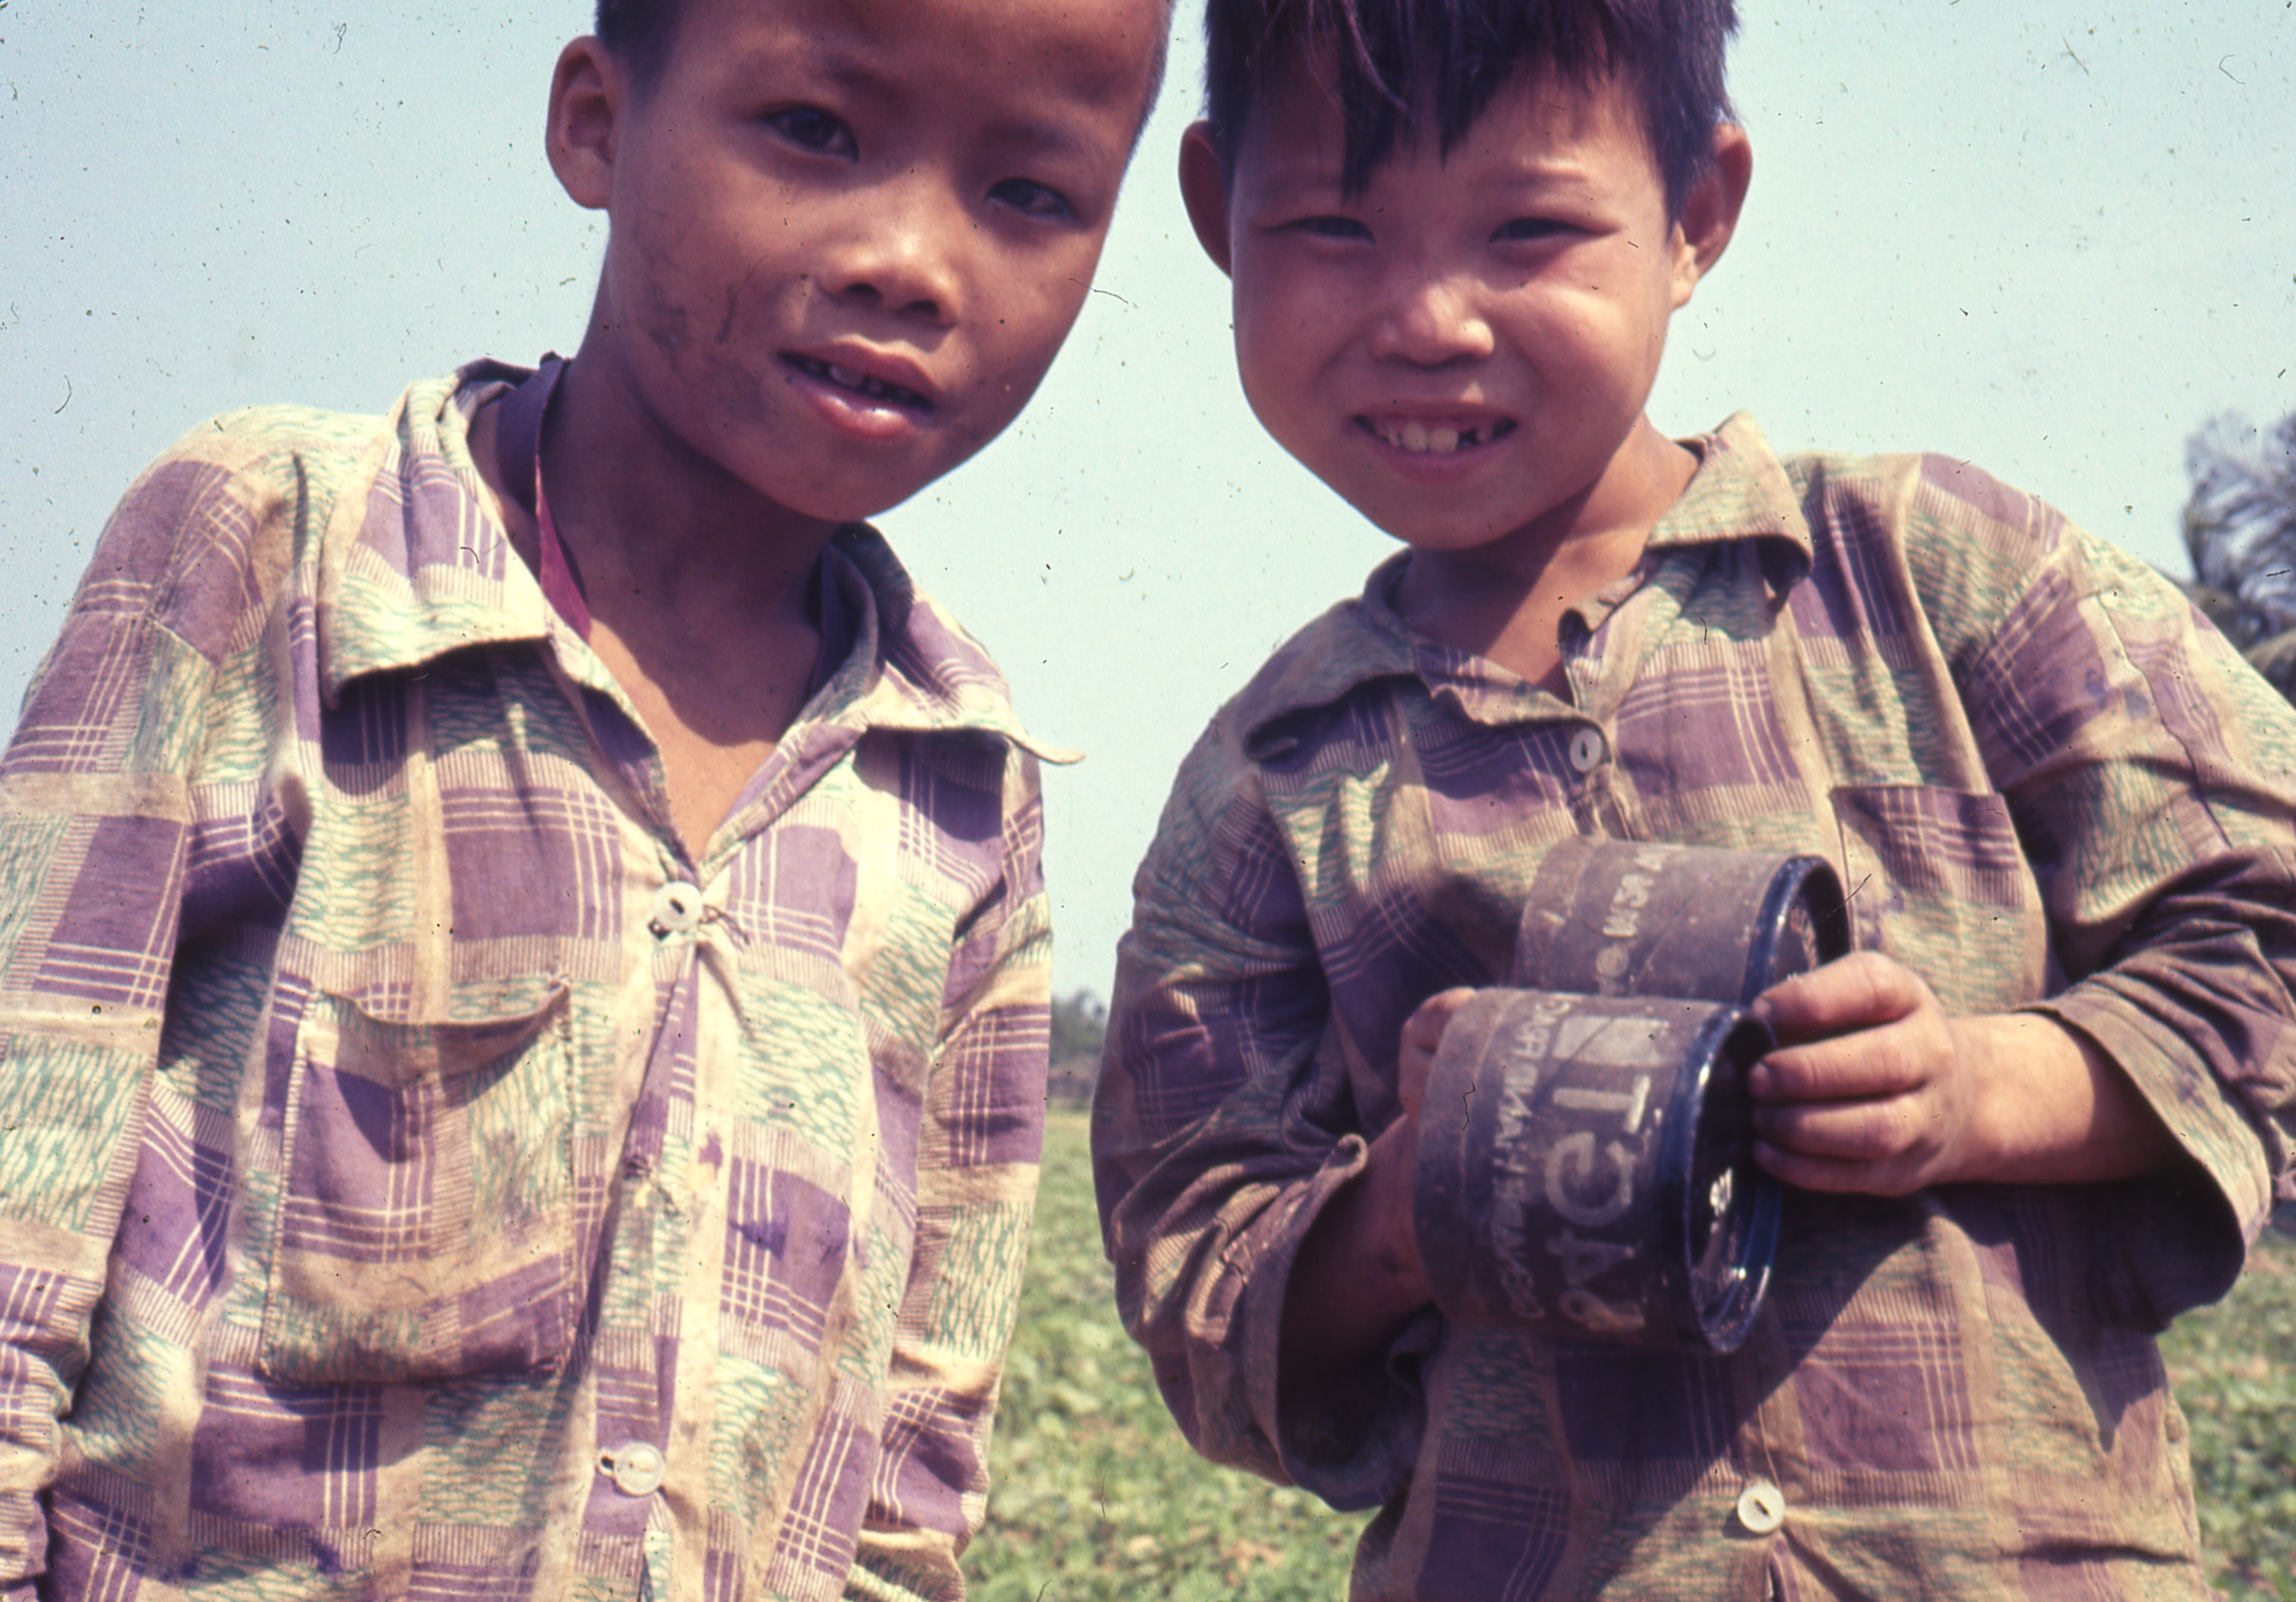 Photograph of two Vietnamese children take by Entin, ca. 1967.